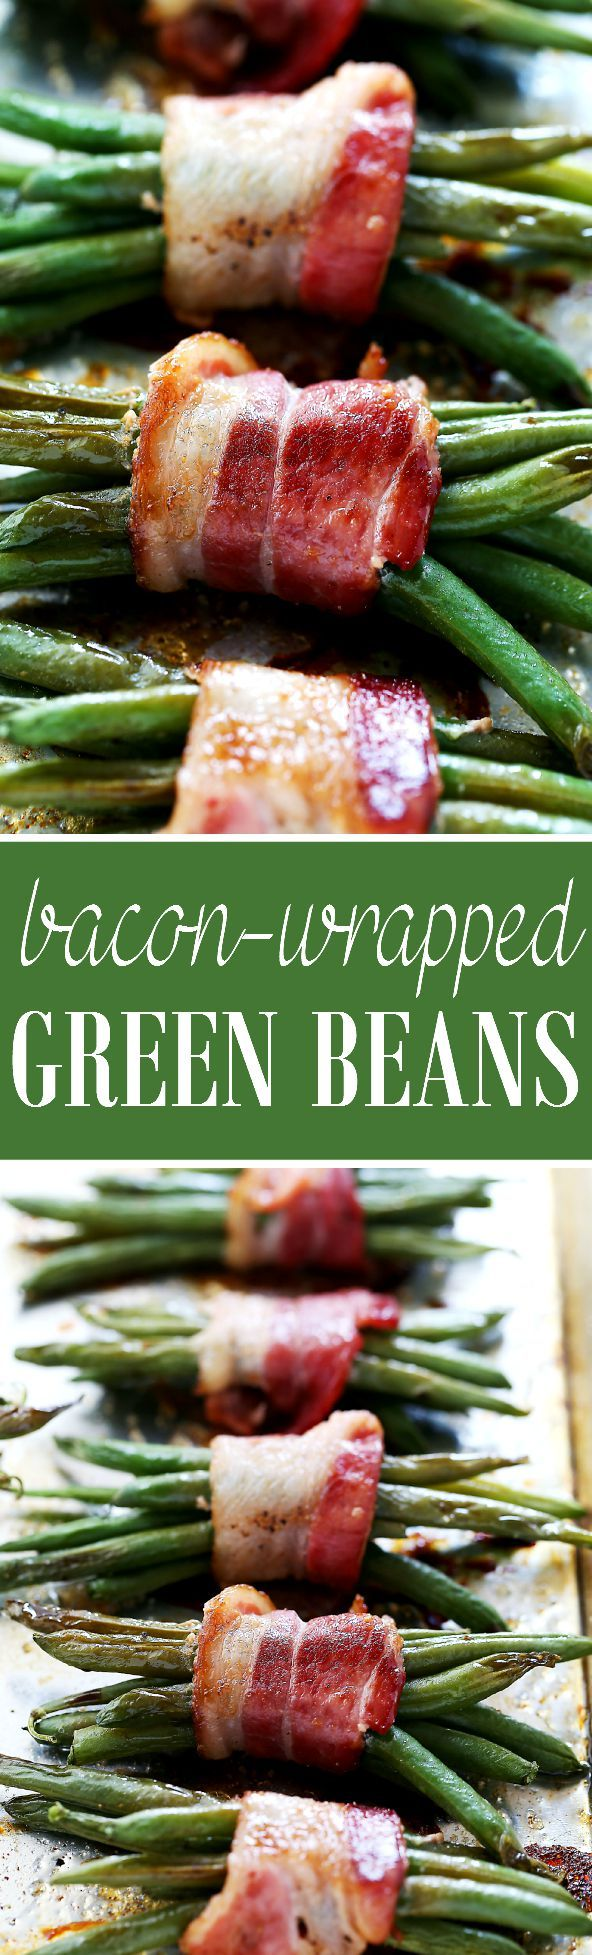 Bacon-Wrapped Green Beans | www.diethood.com | Roasted fresh green beans wrapped in bacon and sprinkled with brown sugar and a drizzle of balsamic vinegar.